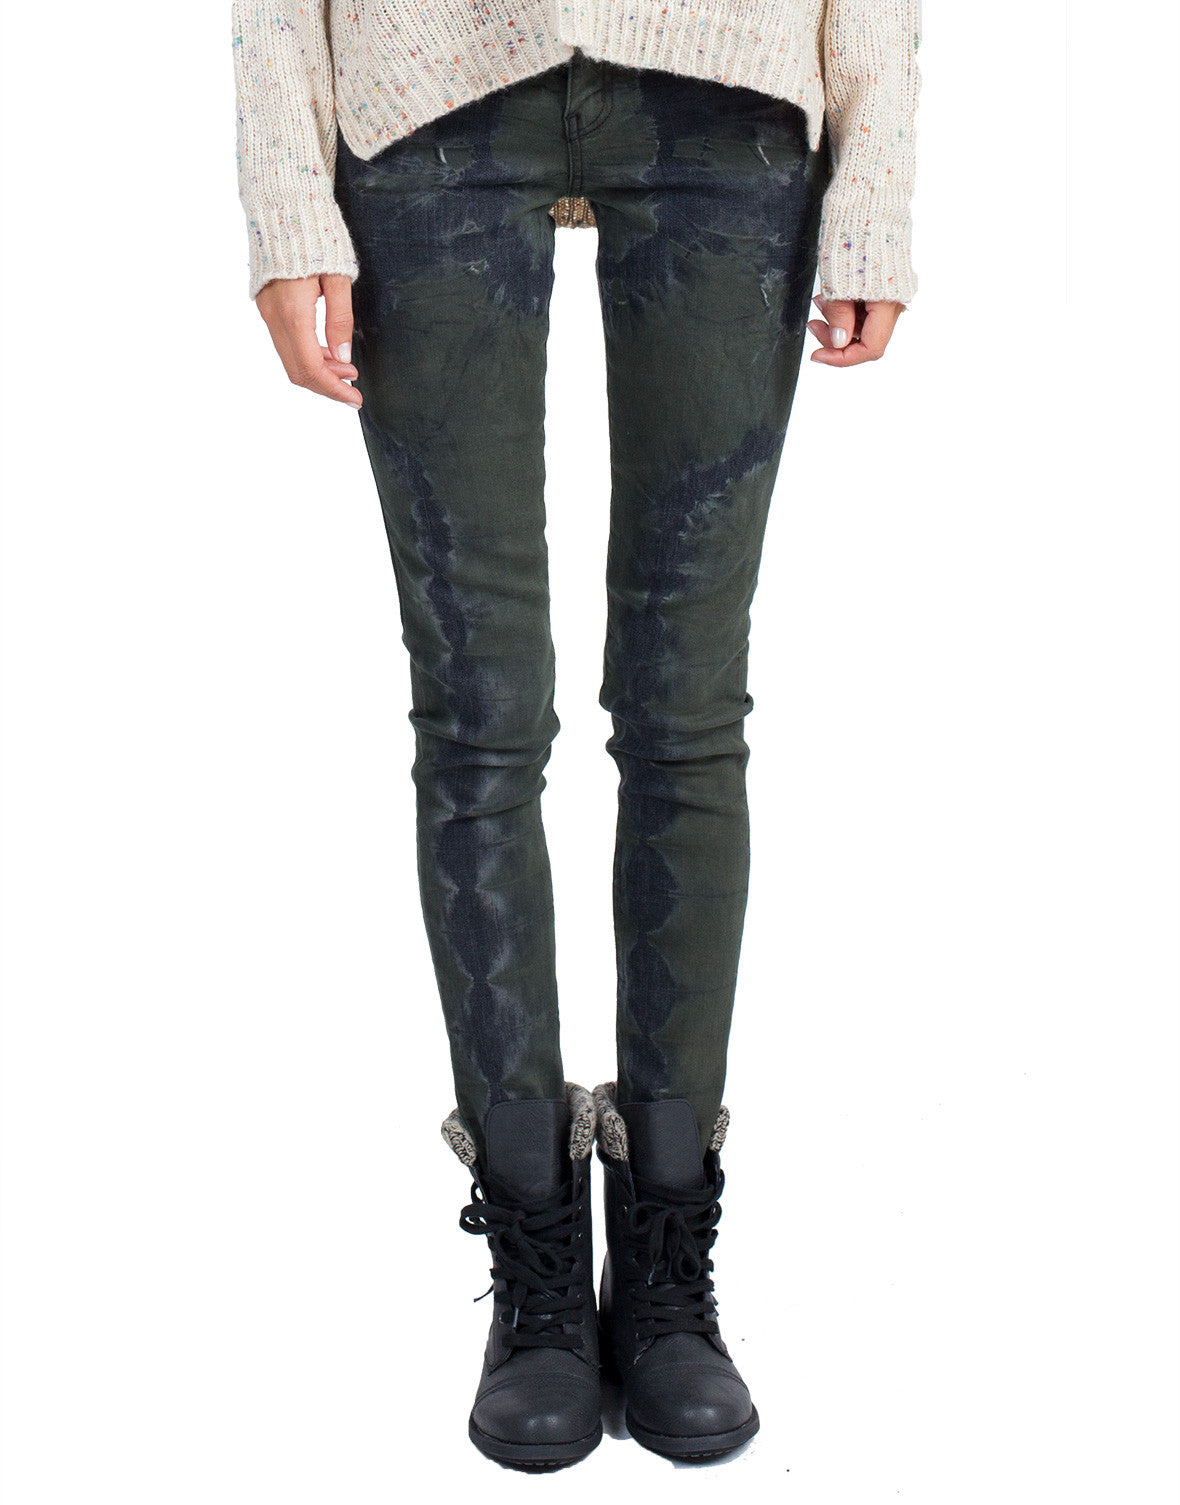 Flying Monkey Jeans - Forest Crush Denim Skinnies - 25